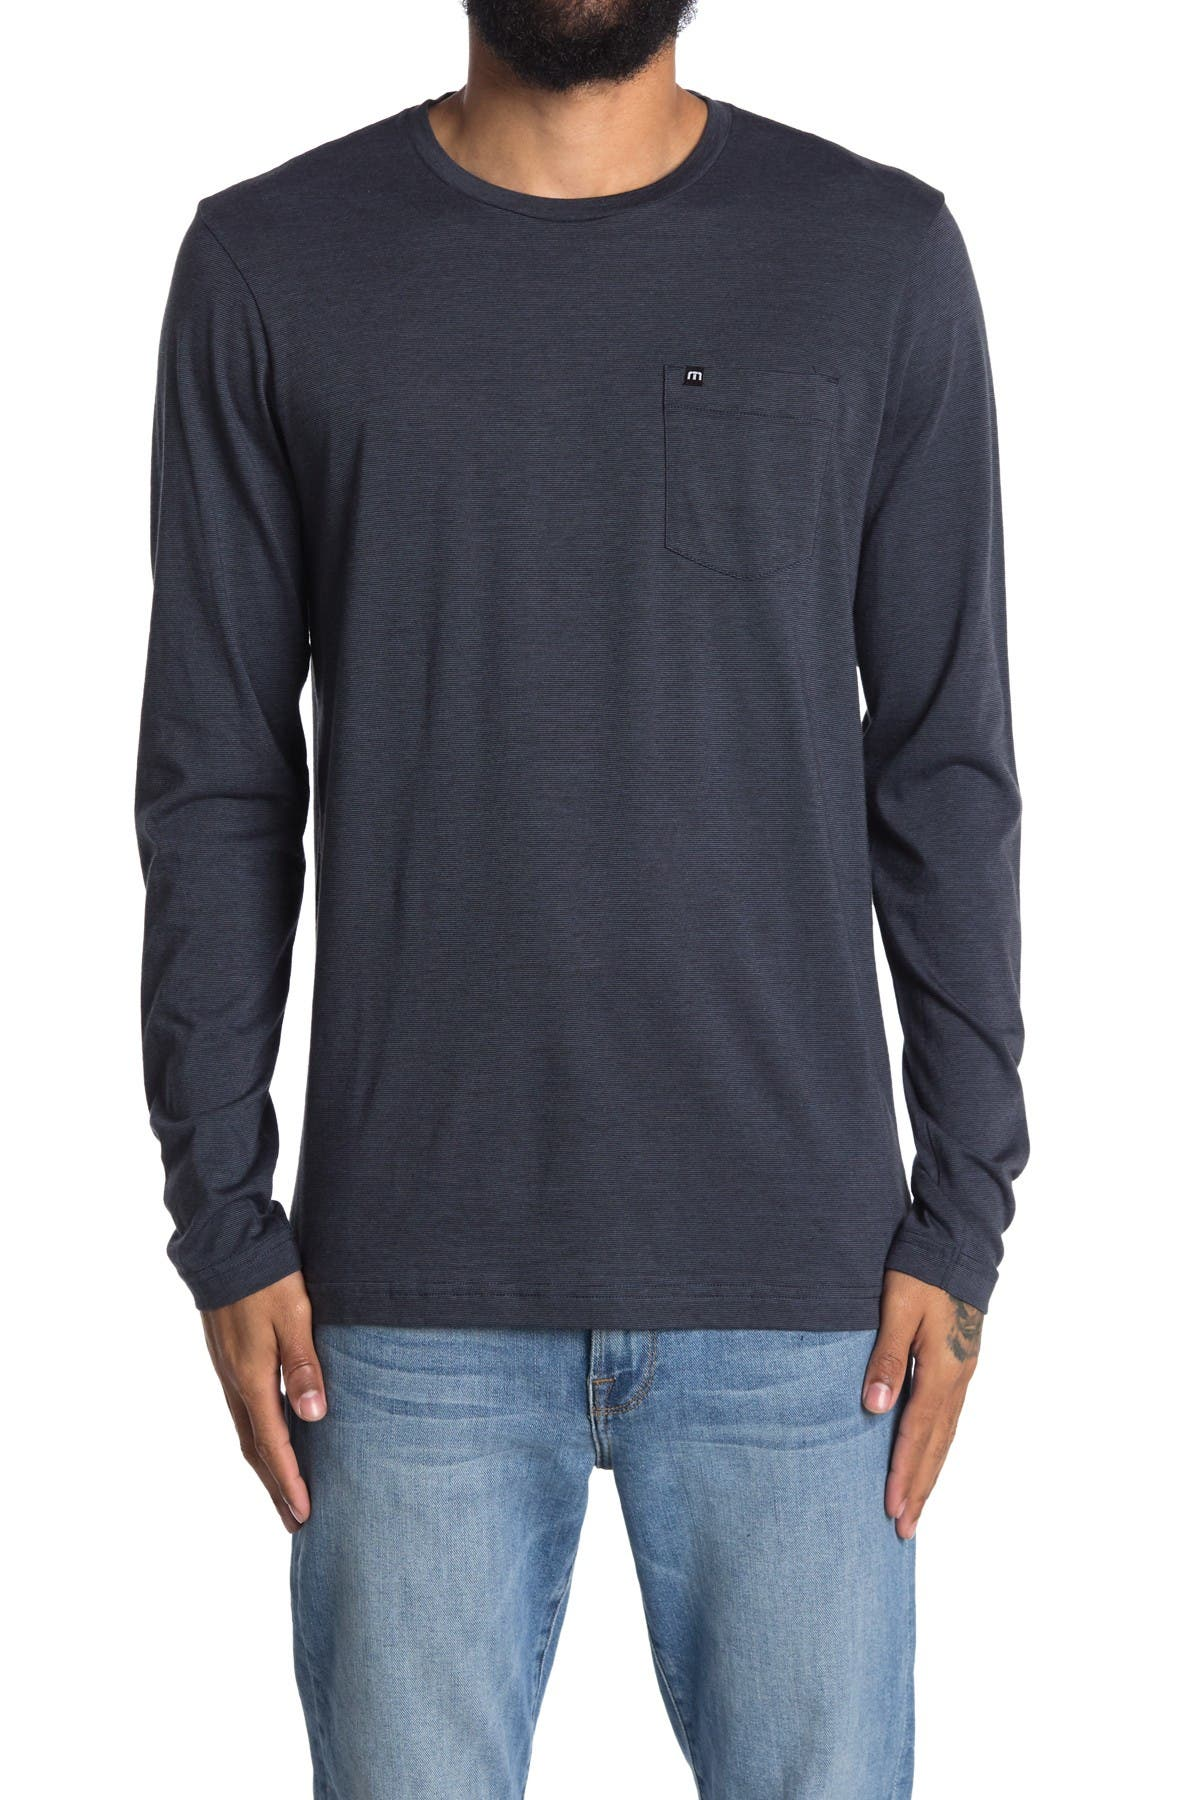 Image of TRAVIS MATHEW Verbal Patch Pocket T-Shirt